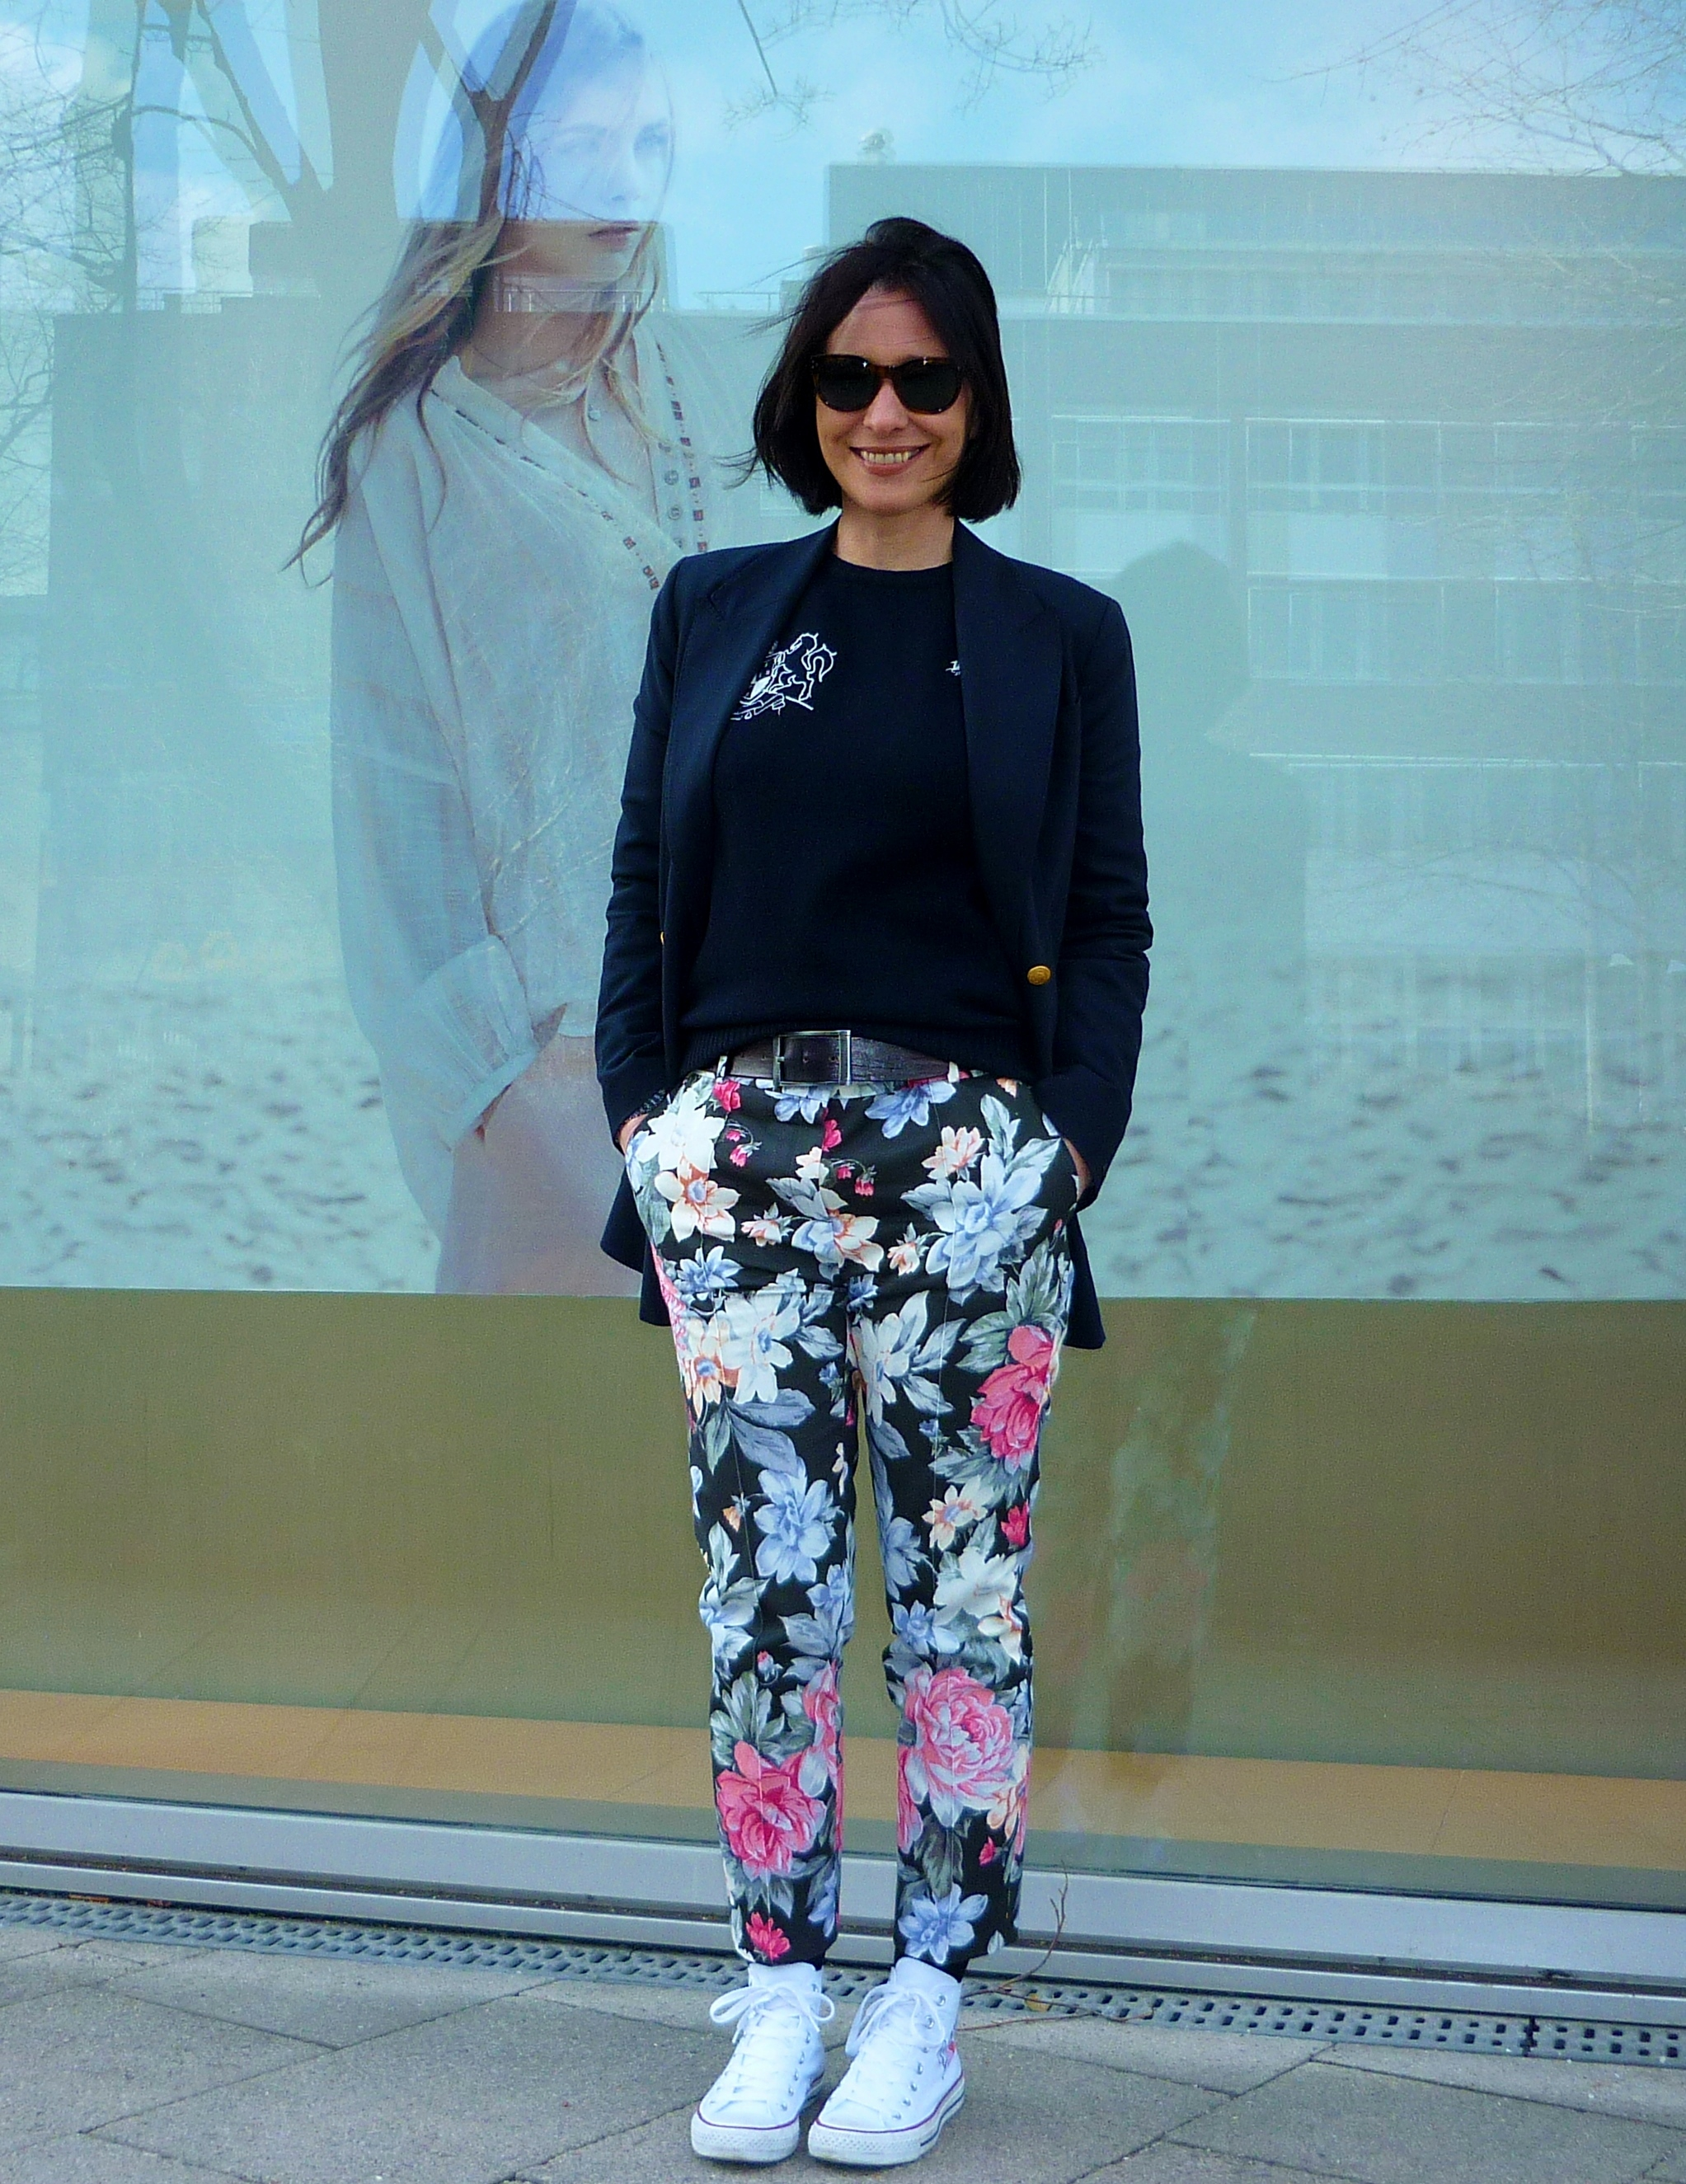 Celine-flower-pants-sytling